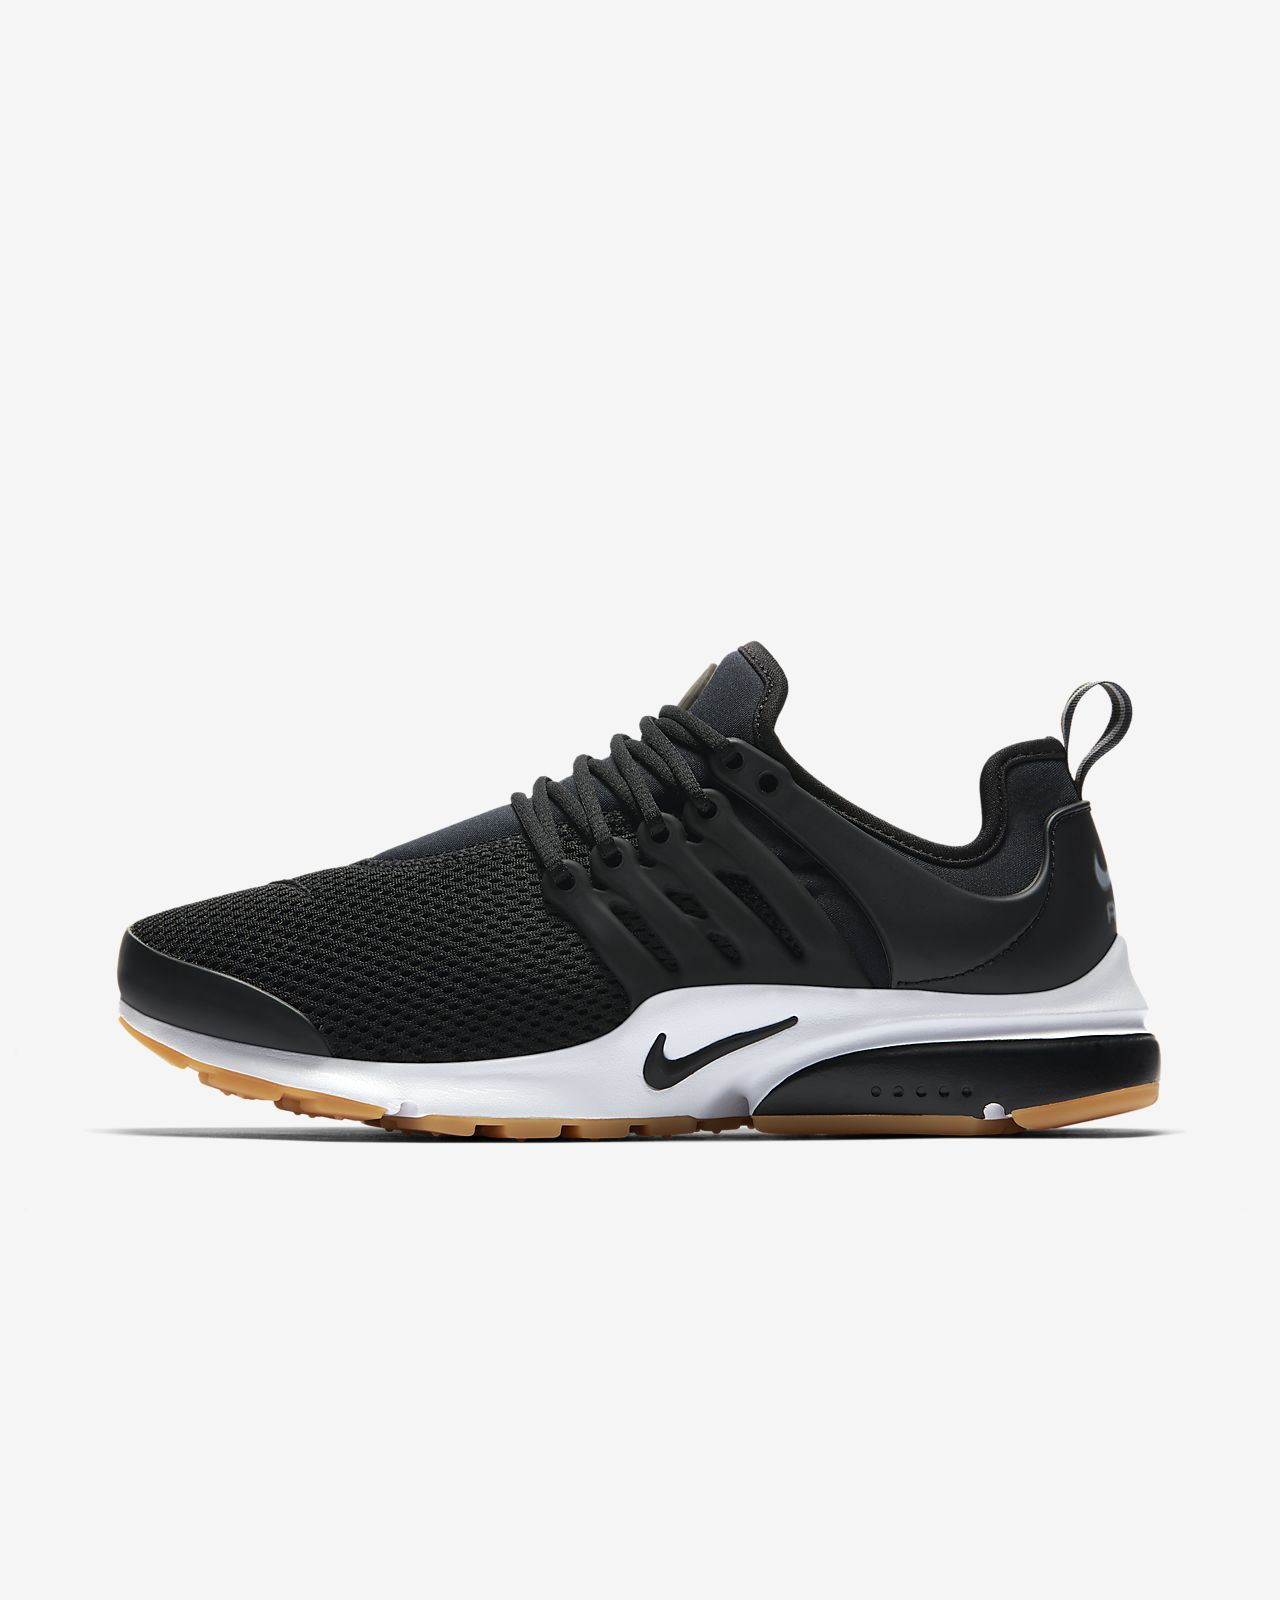 watch f25c9 eea24 ... Nike Air Presto Women s Shoe